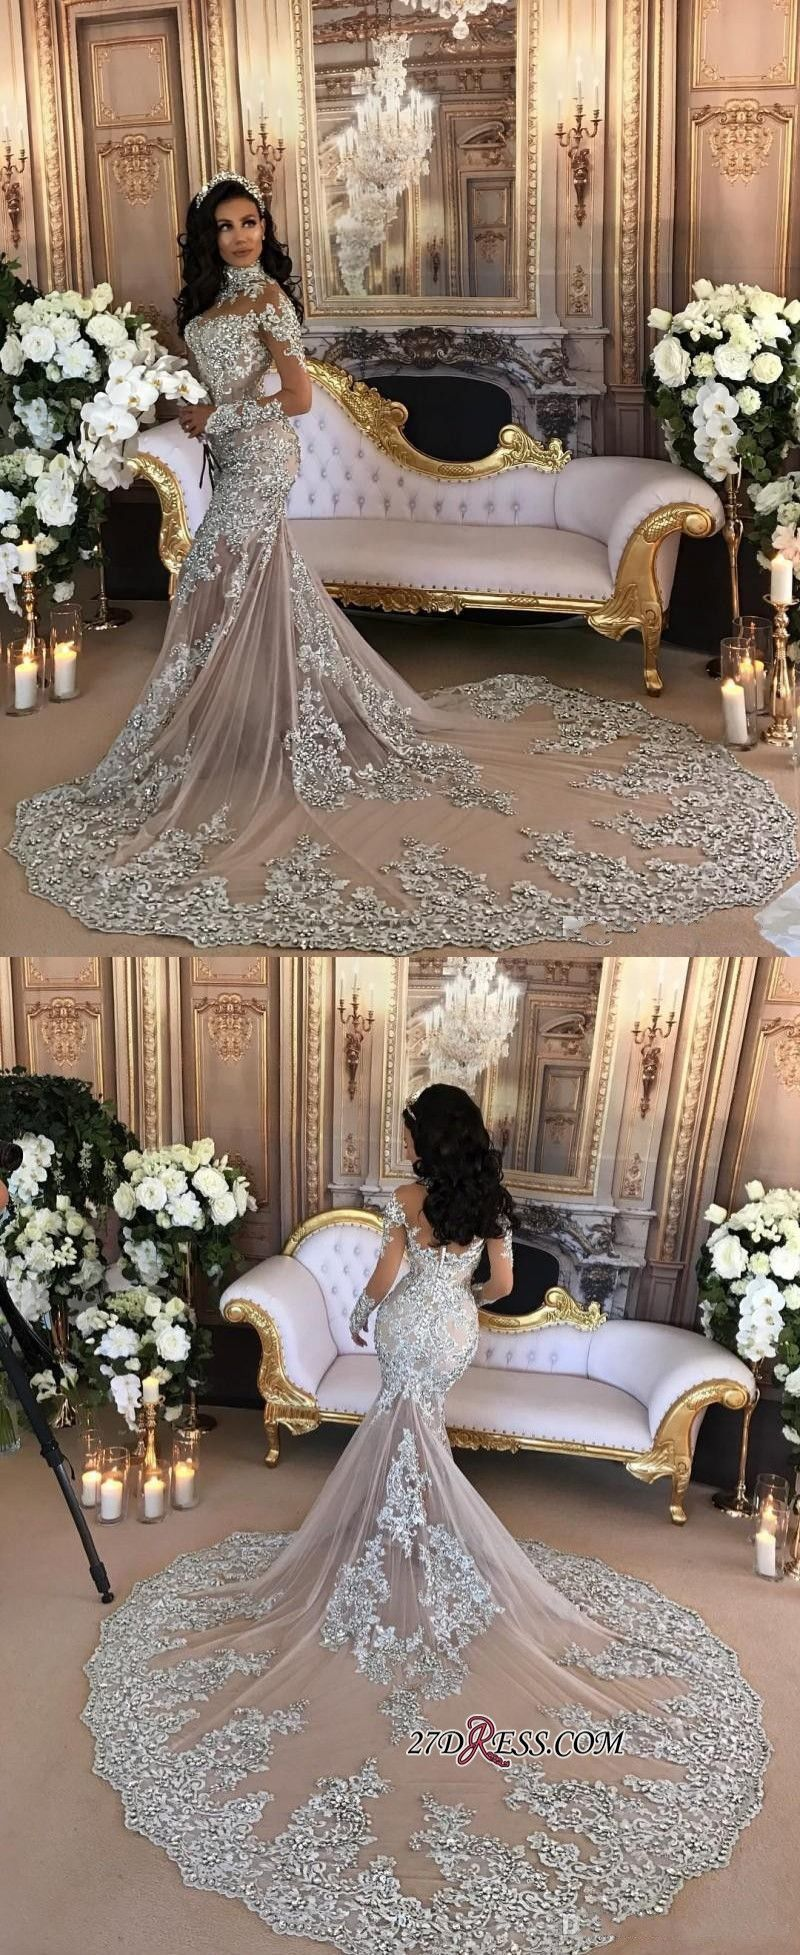 Extra $20 OFF. Lace Appliques Mermaid Long Wedding Dress, 2018 Bridal Wear Online. Shop @27dress.com NOW!